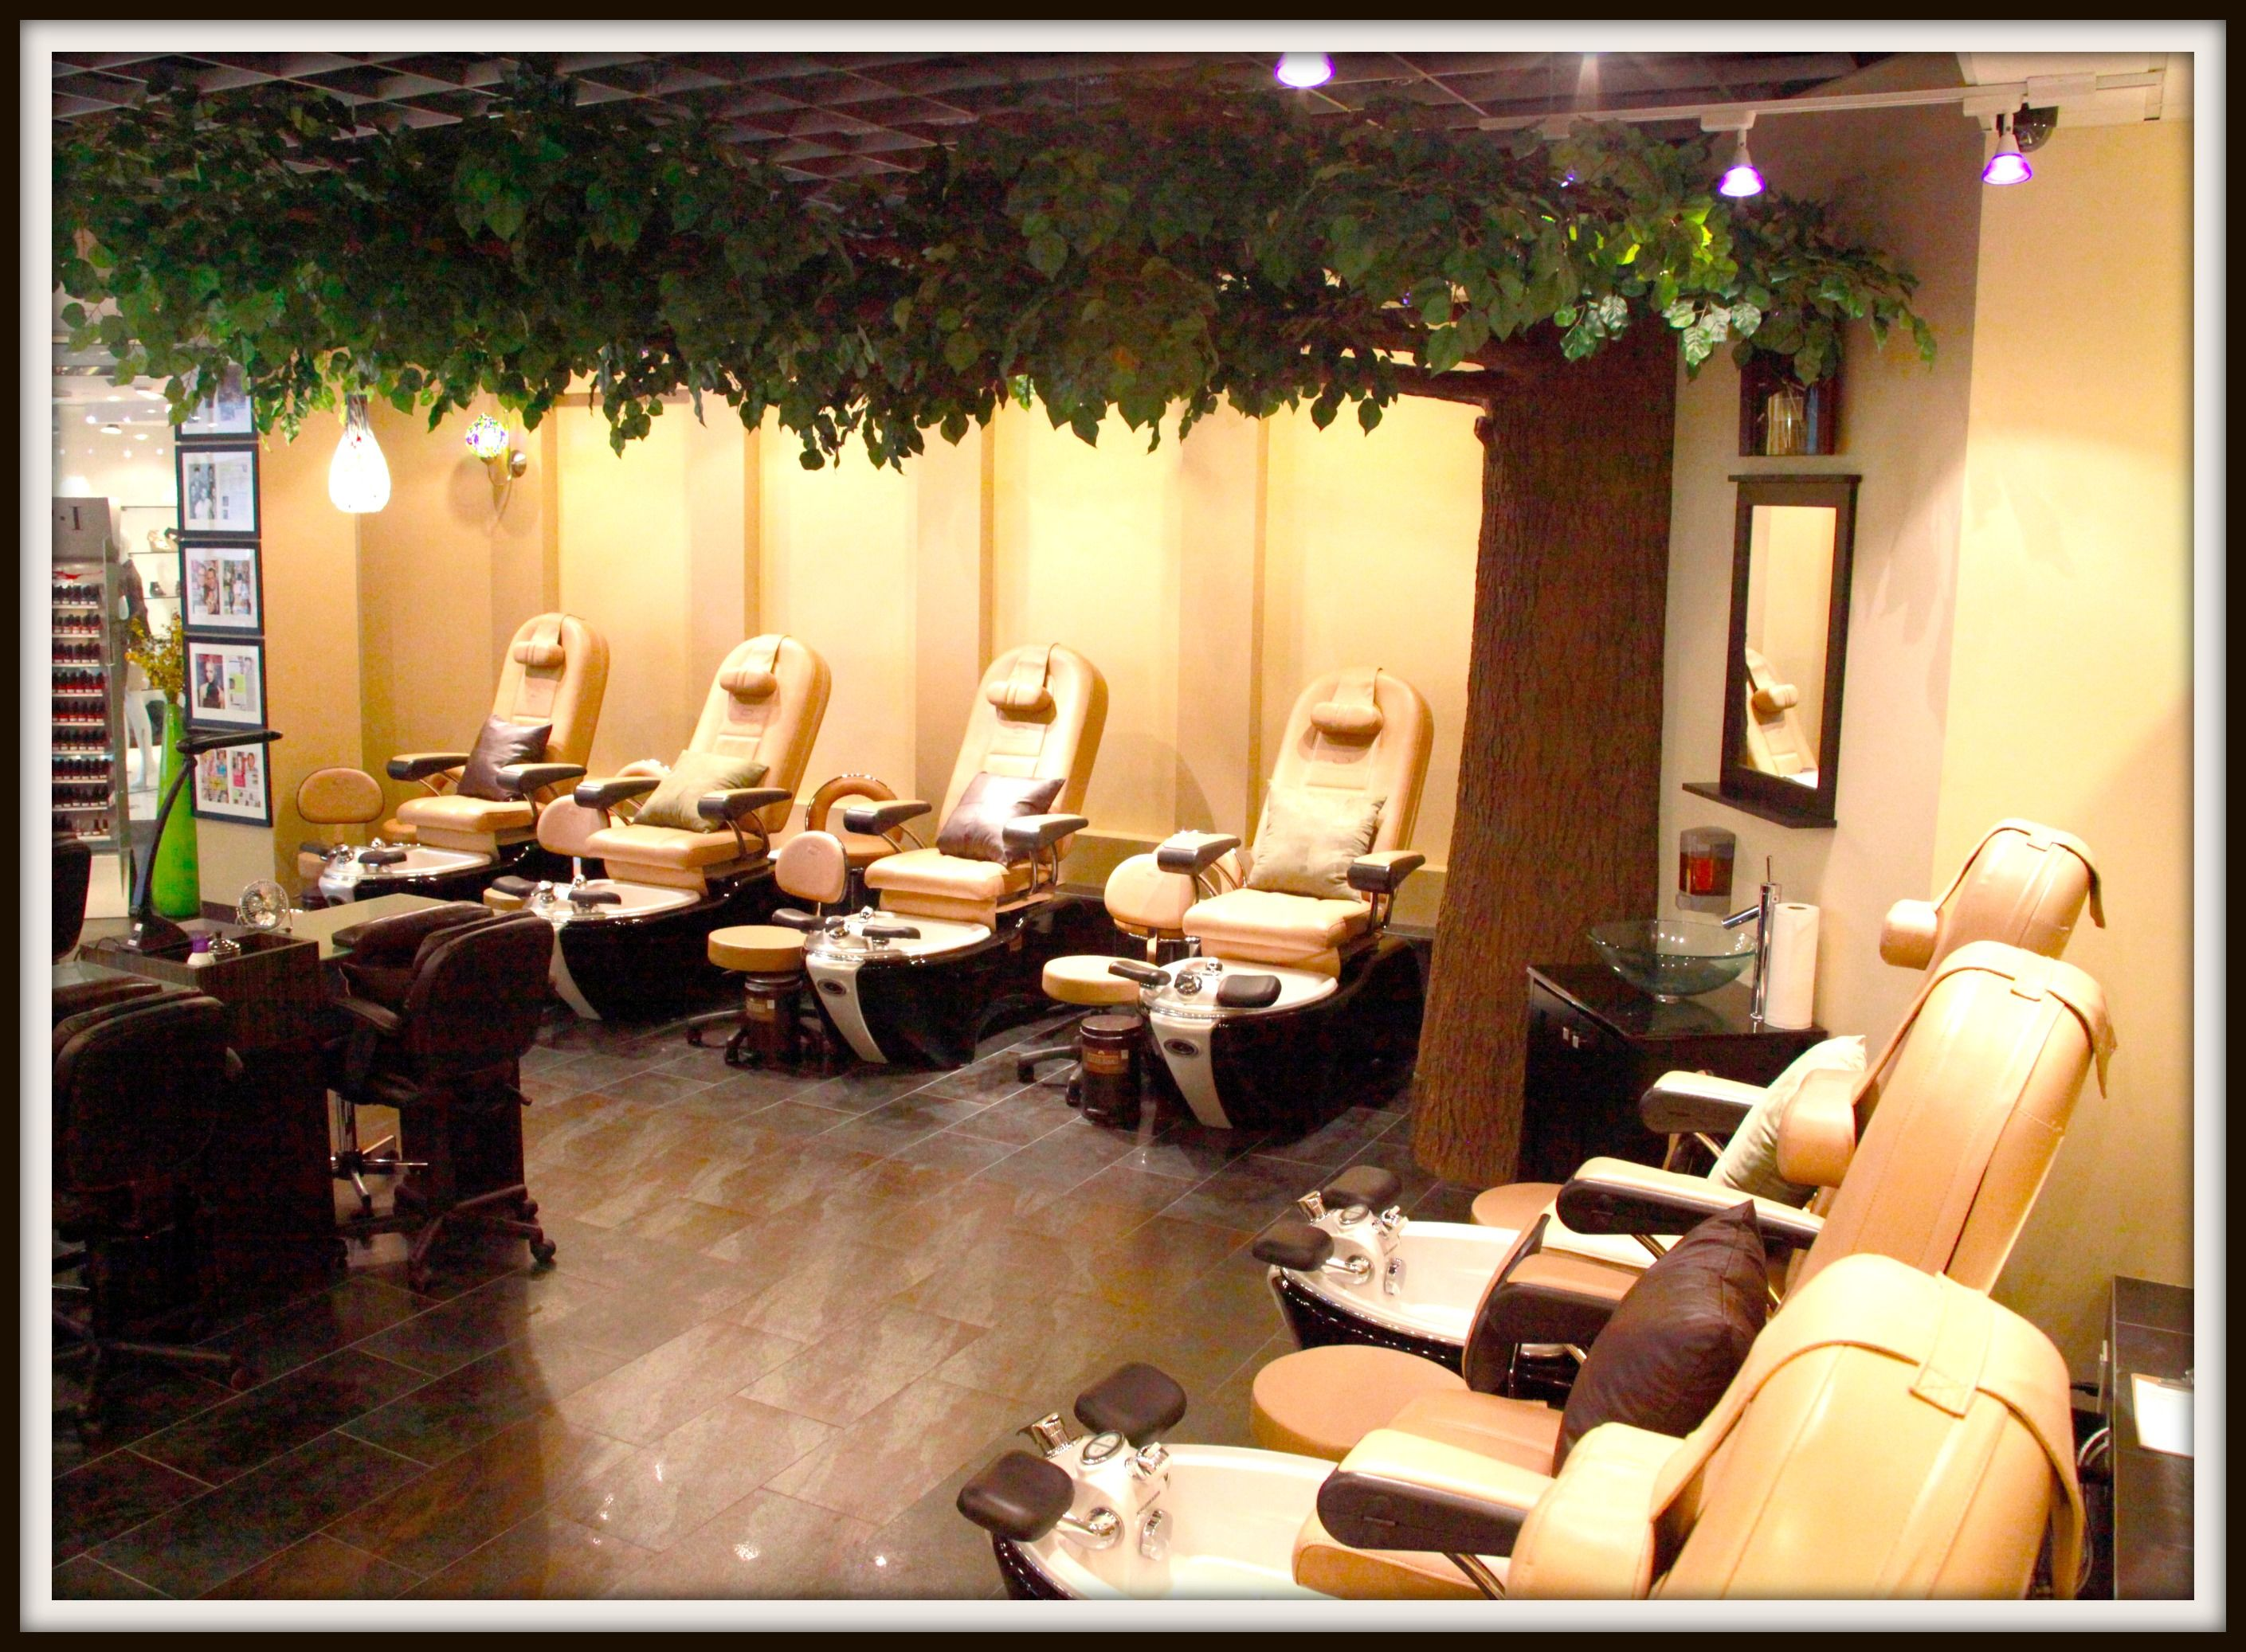 download contemporary nail salon ideas on original size above 525 - Nail Salon Ideas Design